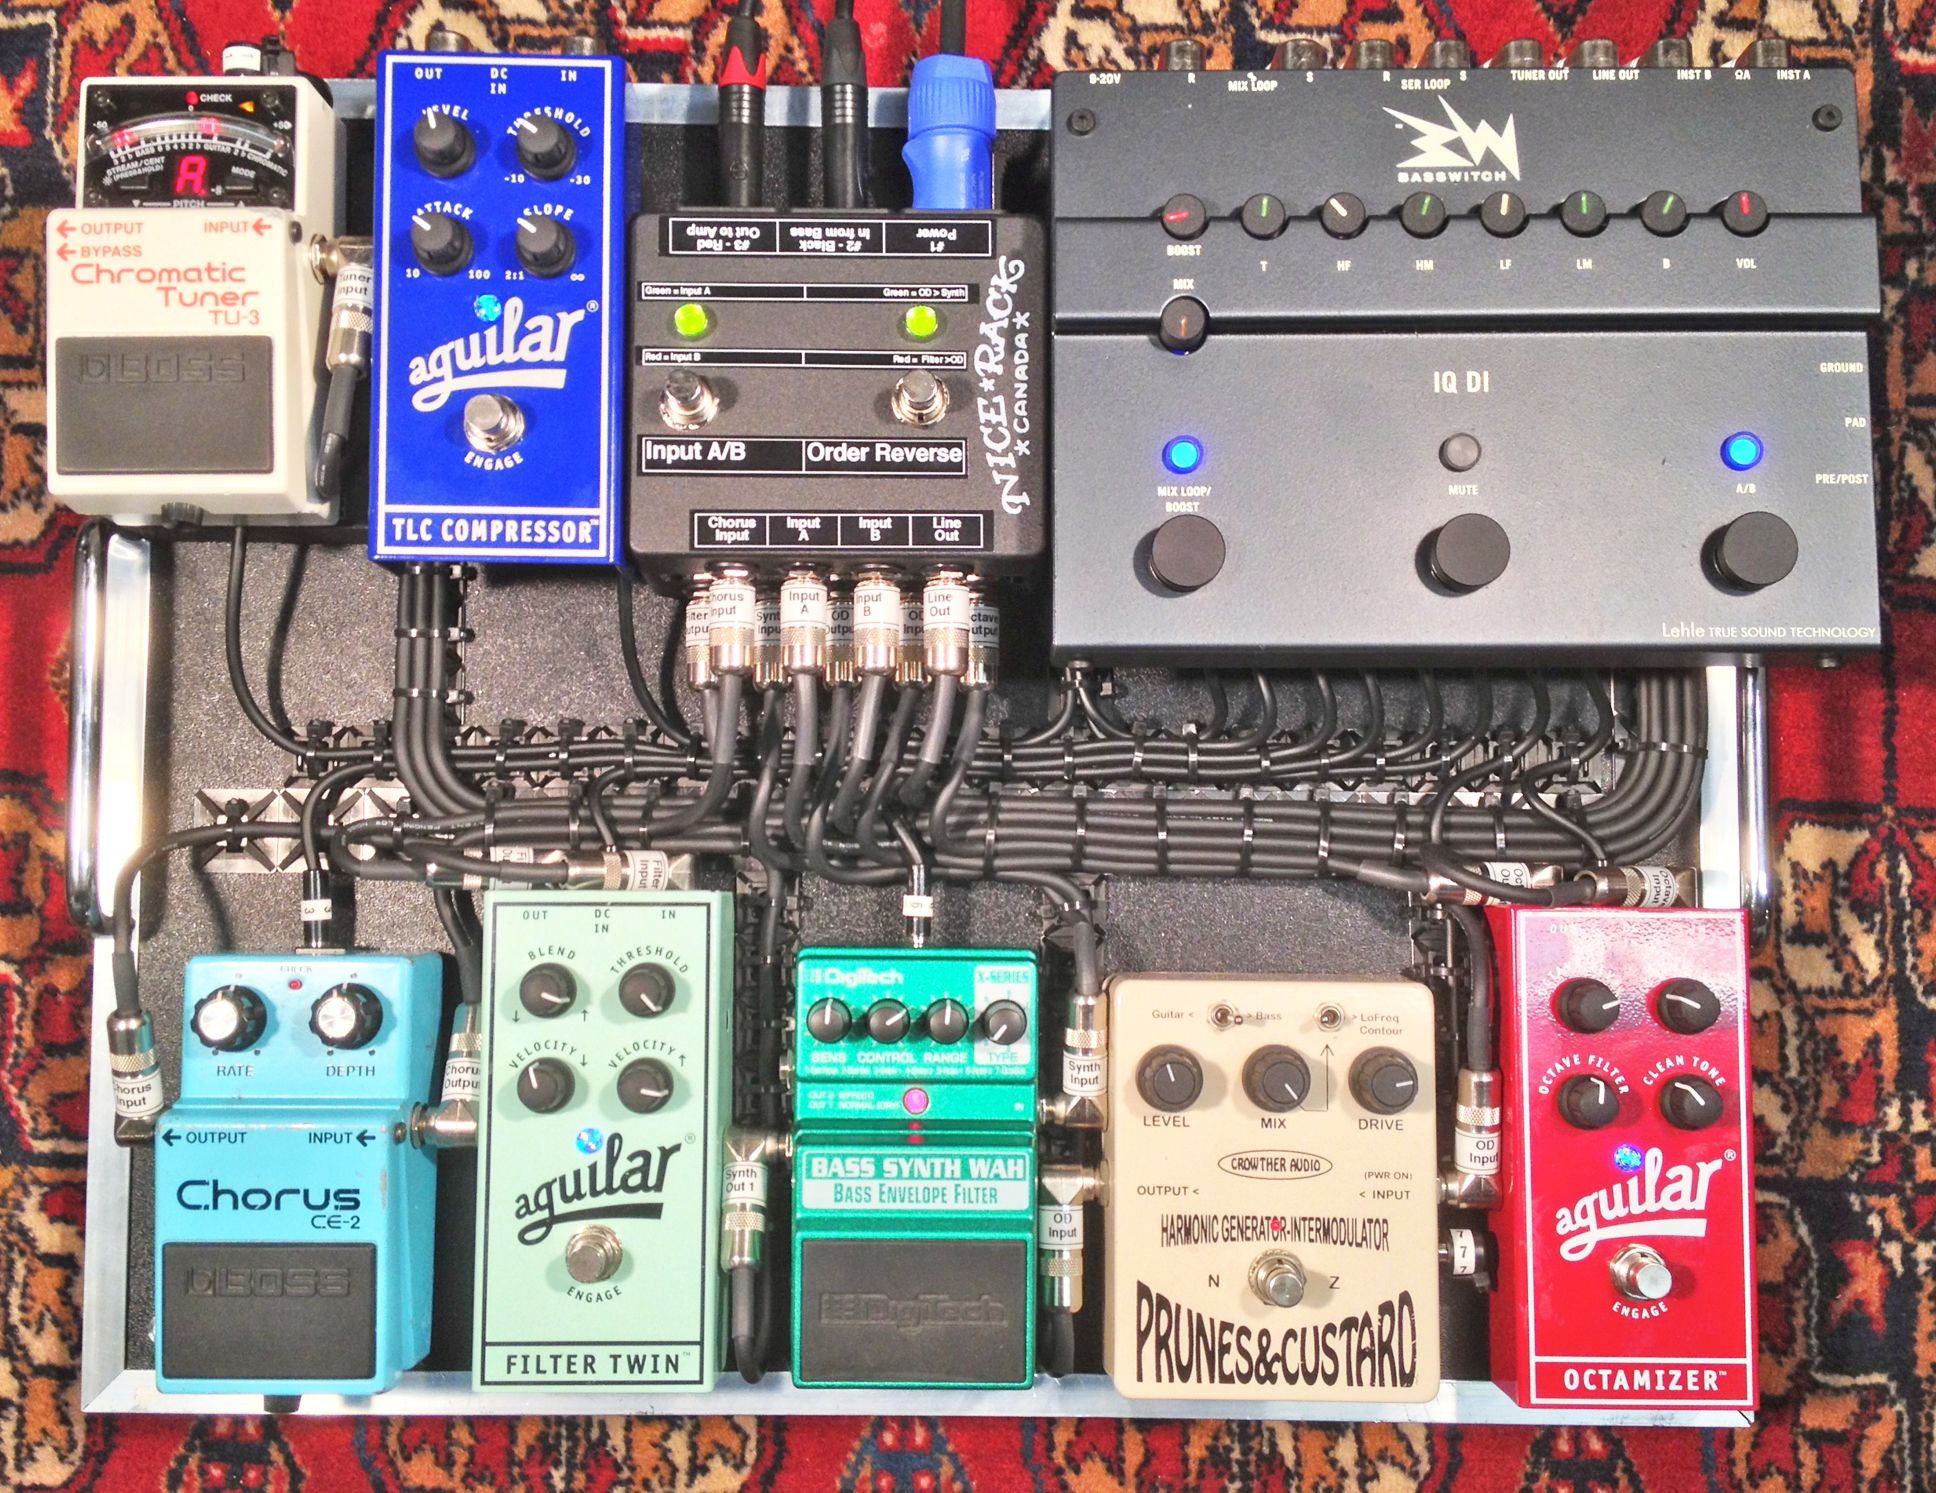 MIDI Controlled Pedalboard for Devon Portielje Half Moon Run Built by Nice Rack Canada Customer System Builds Pinterest